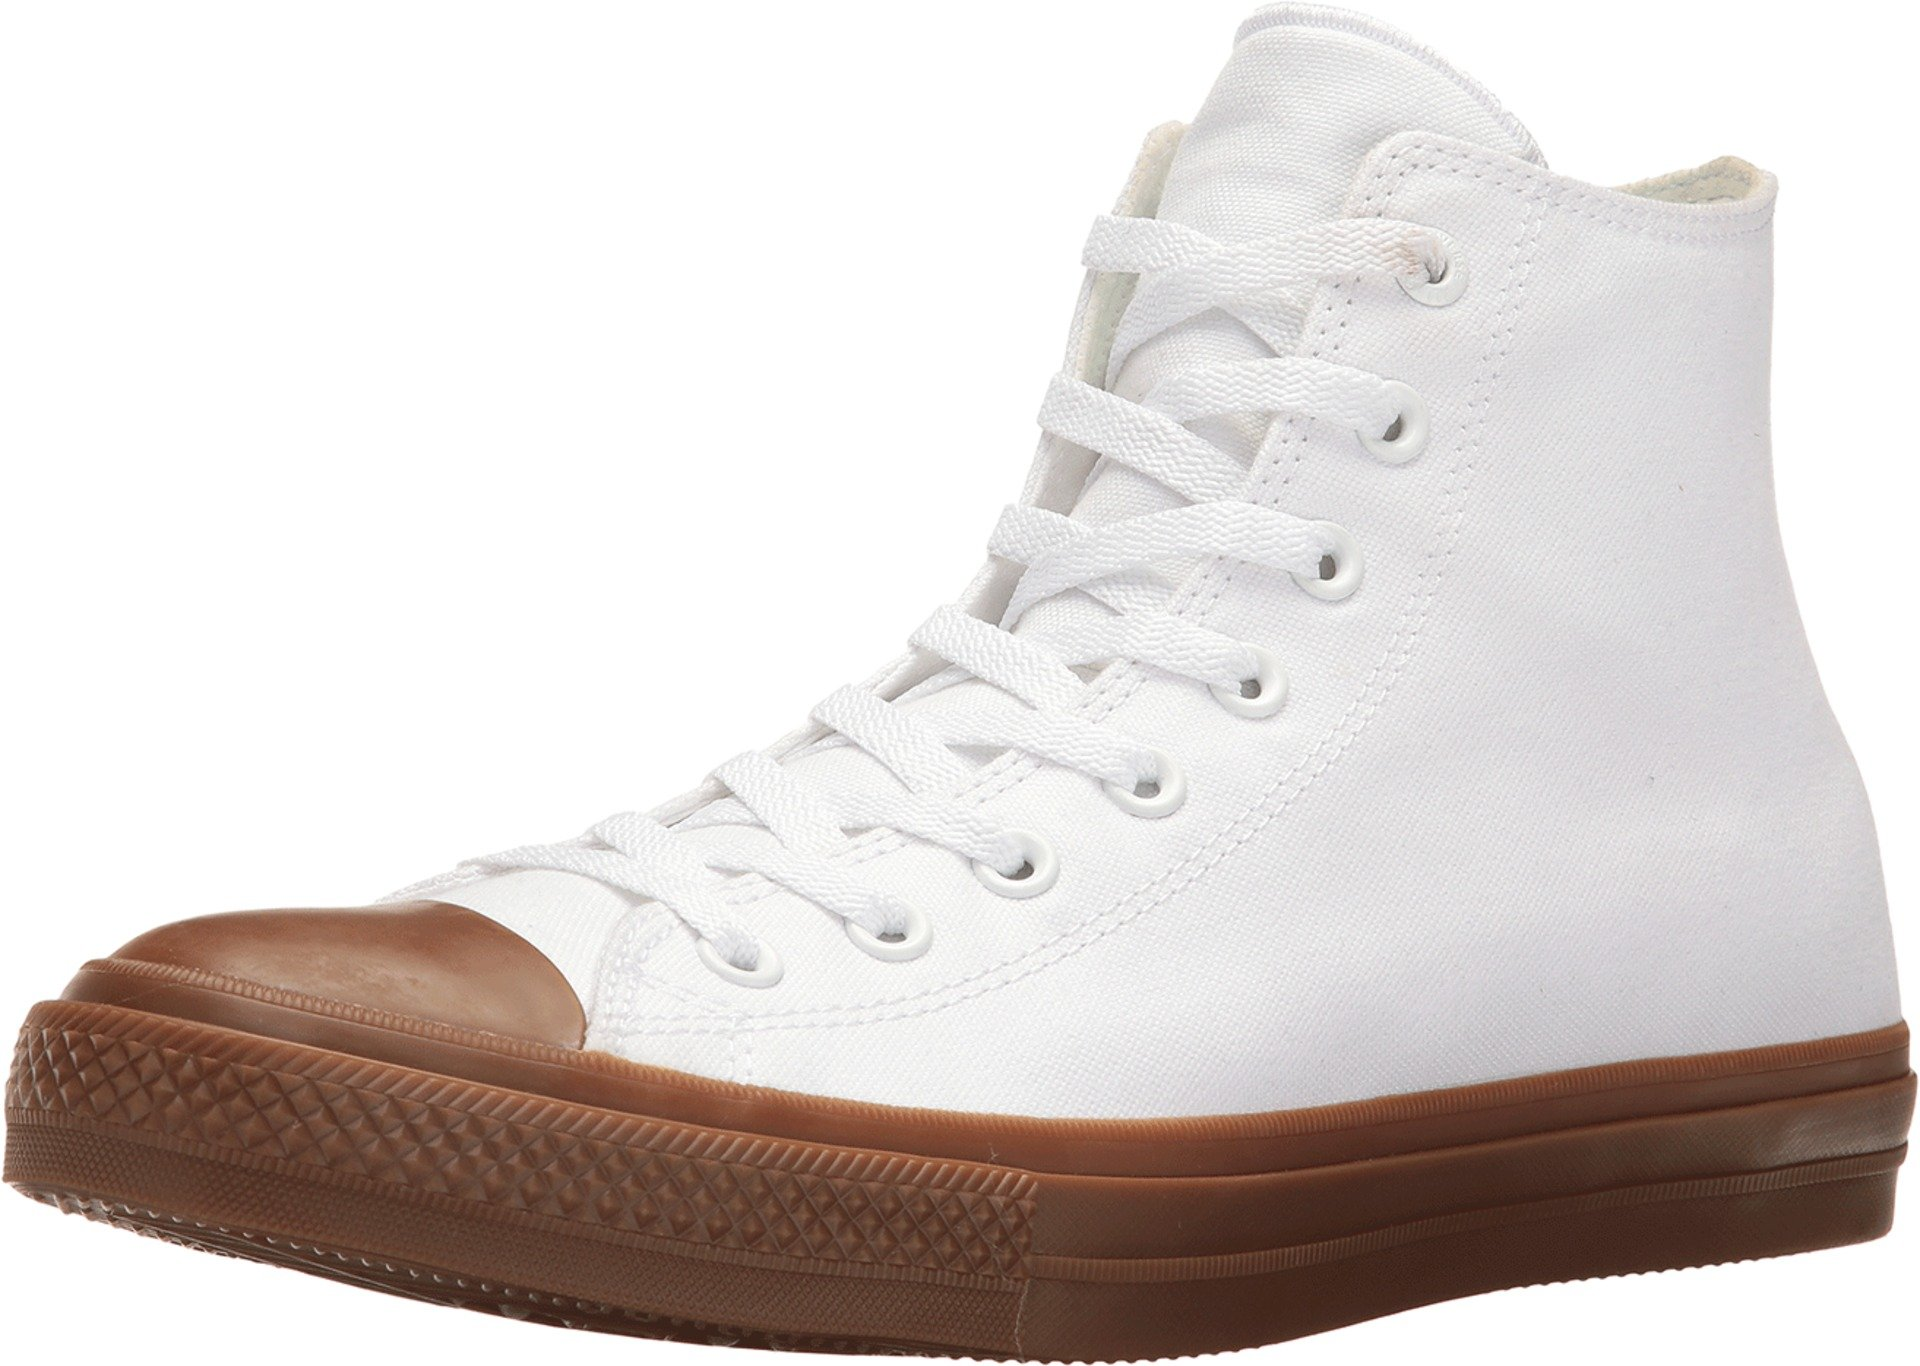 Converse Chuck Taylor All Star II Gum Hi WhiteWhiteGum Classic Shoes